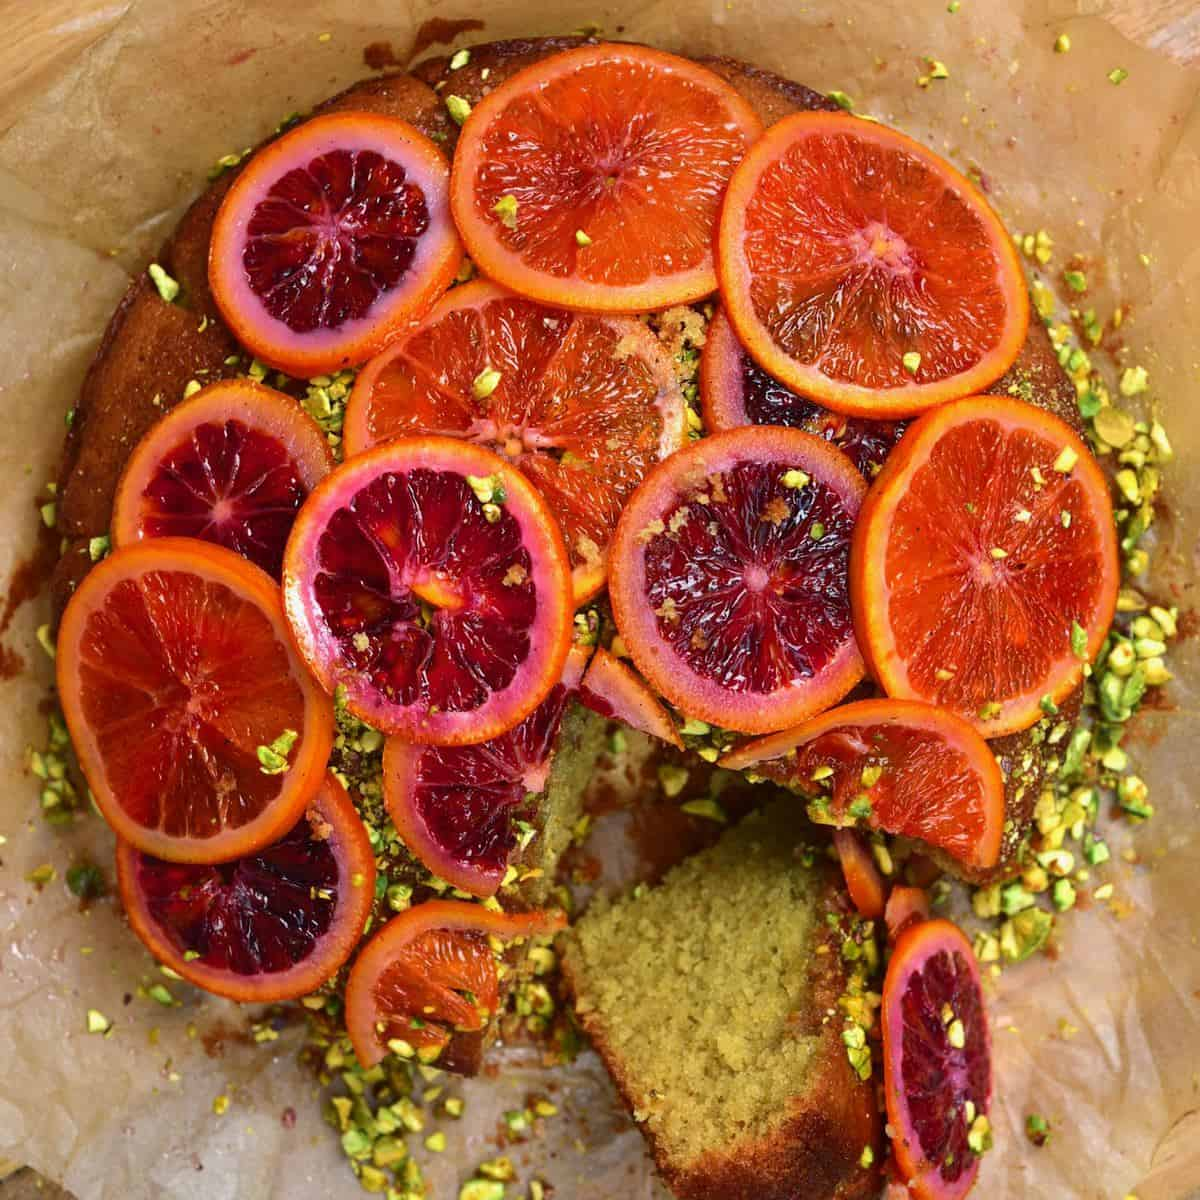 Blood Orange Cake with Pistachios with a piece sliced off